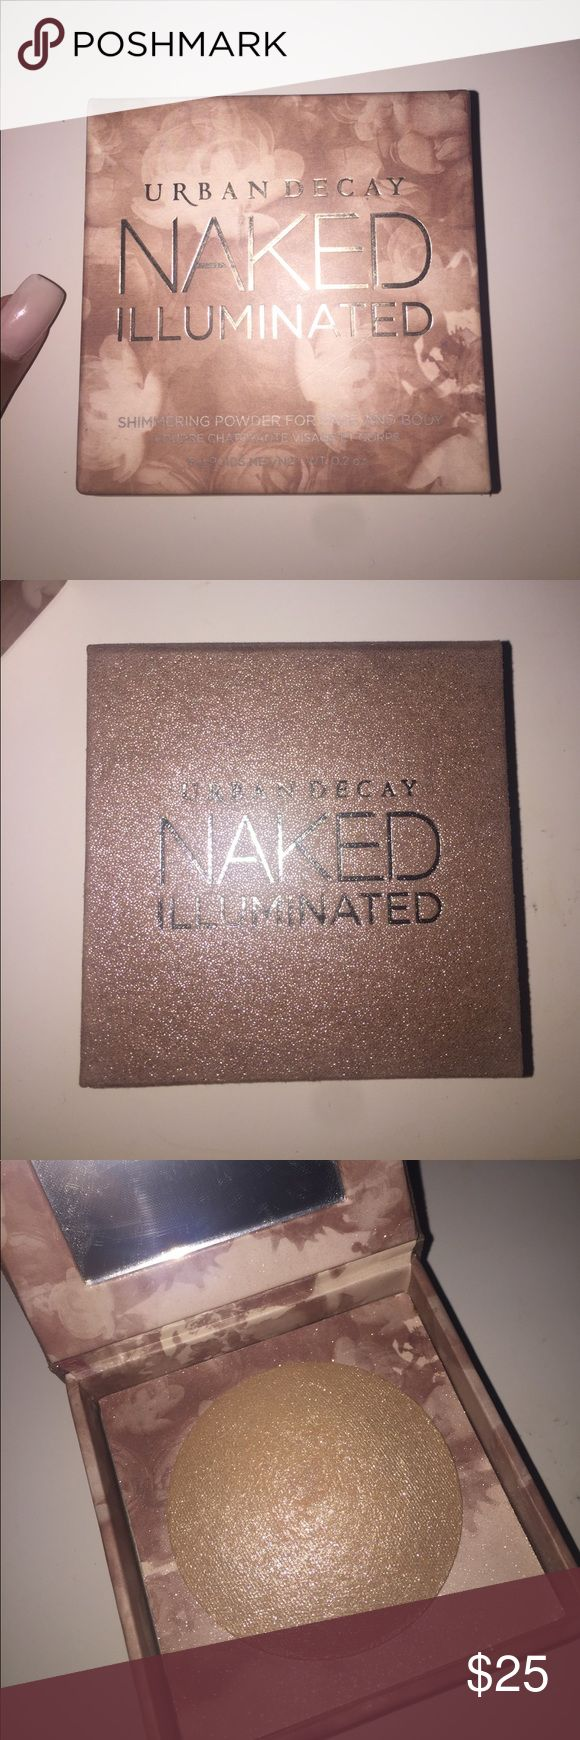 URBAN DECAY SHIMMER POWDER  HIGHLIGHTER Powder highlighter for face and body + BRAND NEW & Mini brush included❗️NO TRADES❗️ Urban Decay Makeup Luminizer